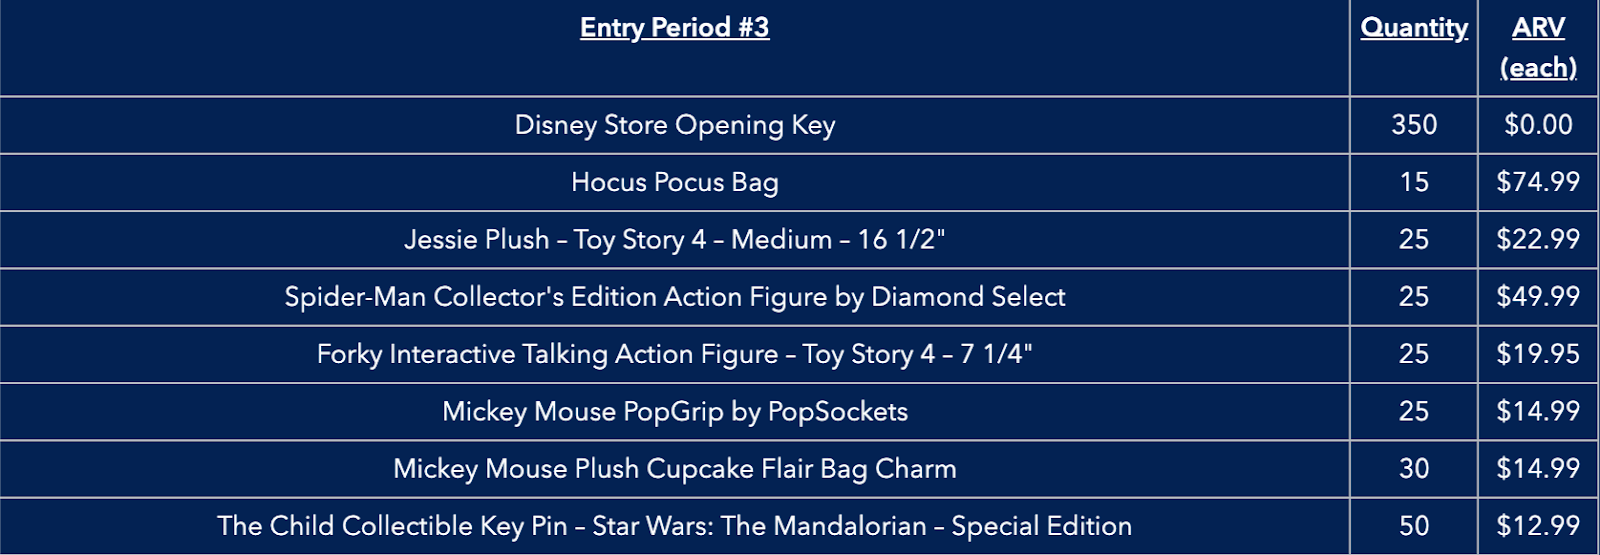 Unlock the Magic Giveaway prizes available during entry period 3.